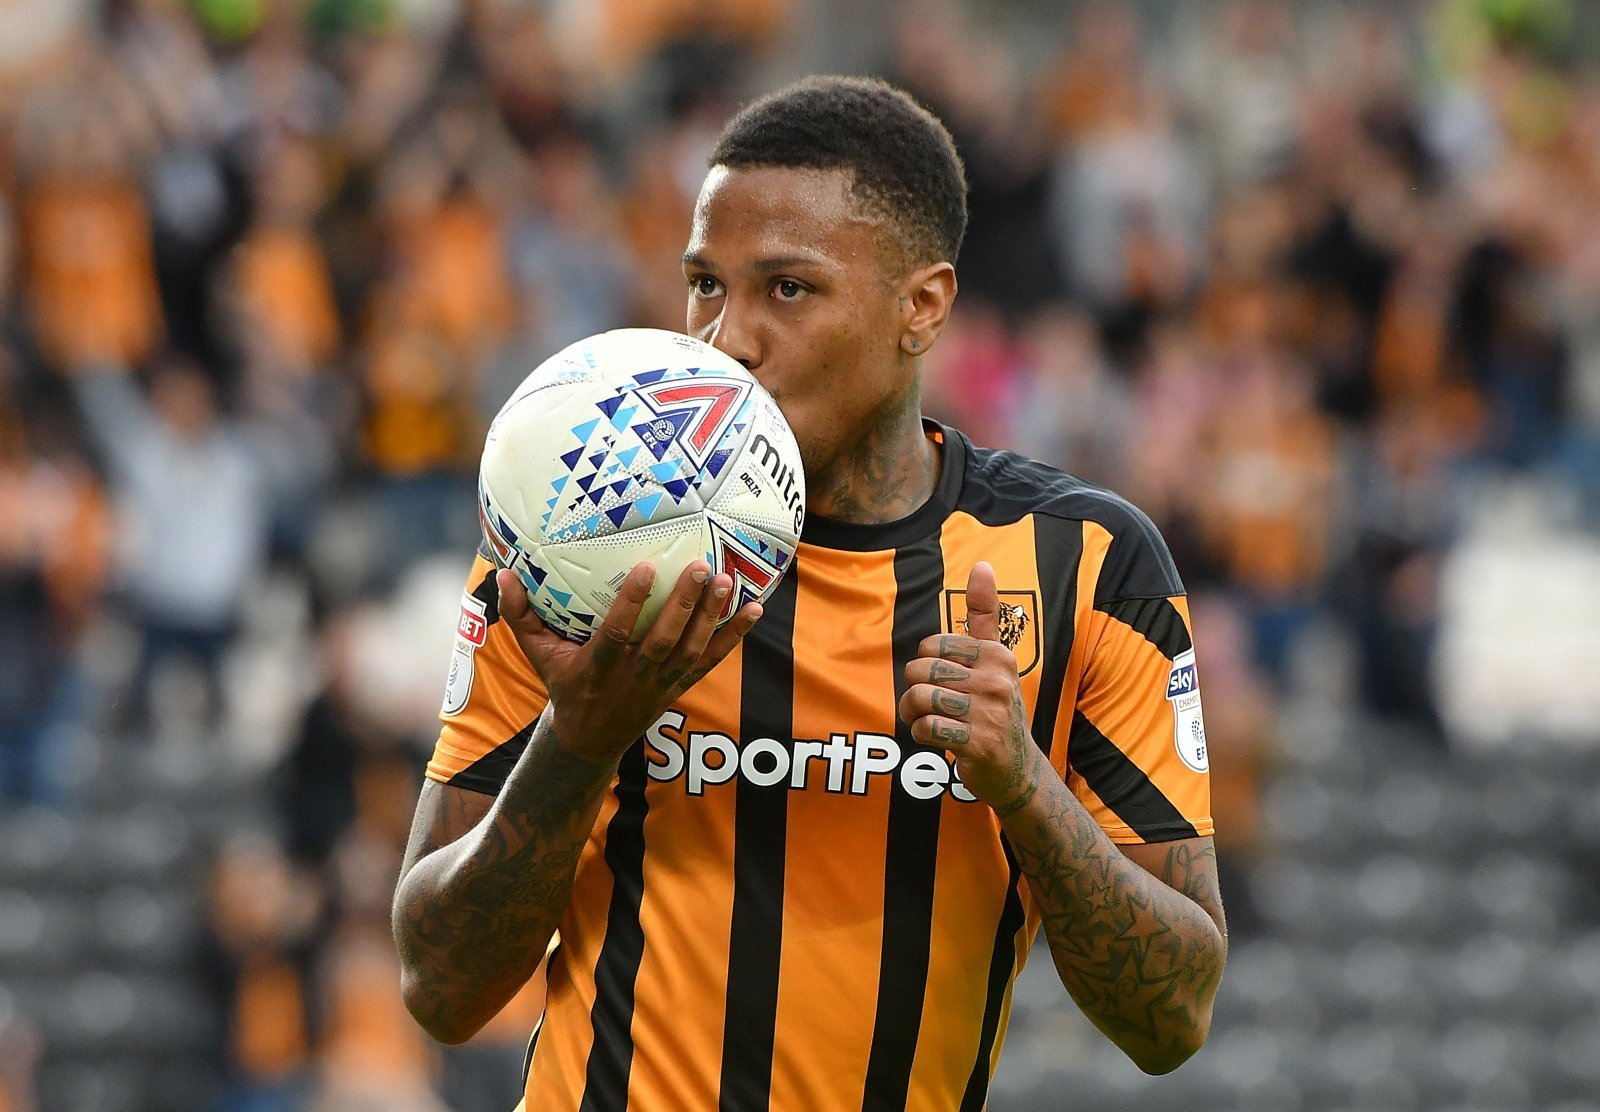 Dodged a bullet: Leeds United and Abel Hernandez